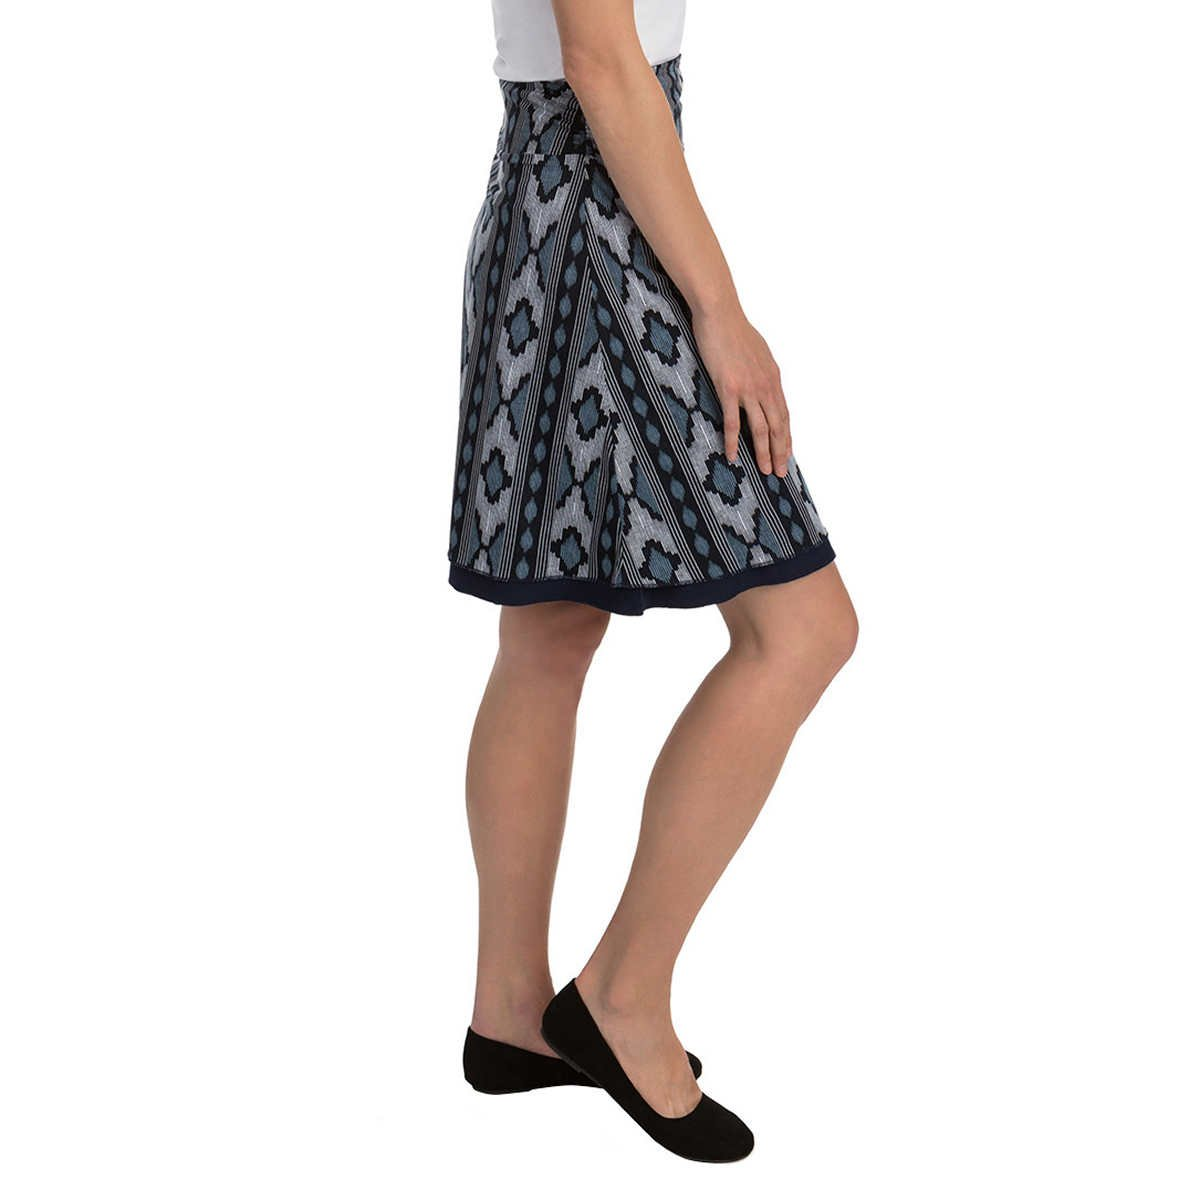 Colorado Clothing Tranquility Womens Reversible Skirt, Navy Pattern, Large by Colorado Clothing